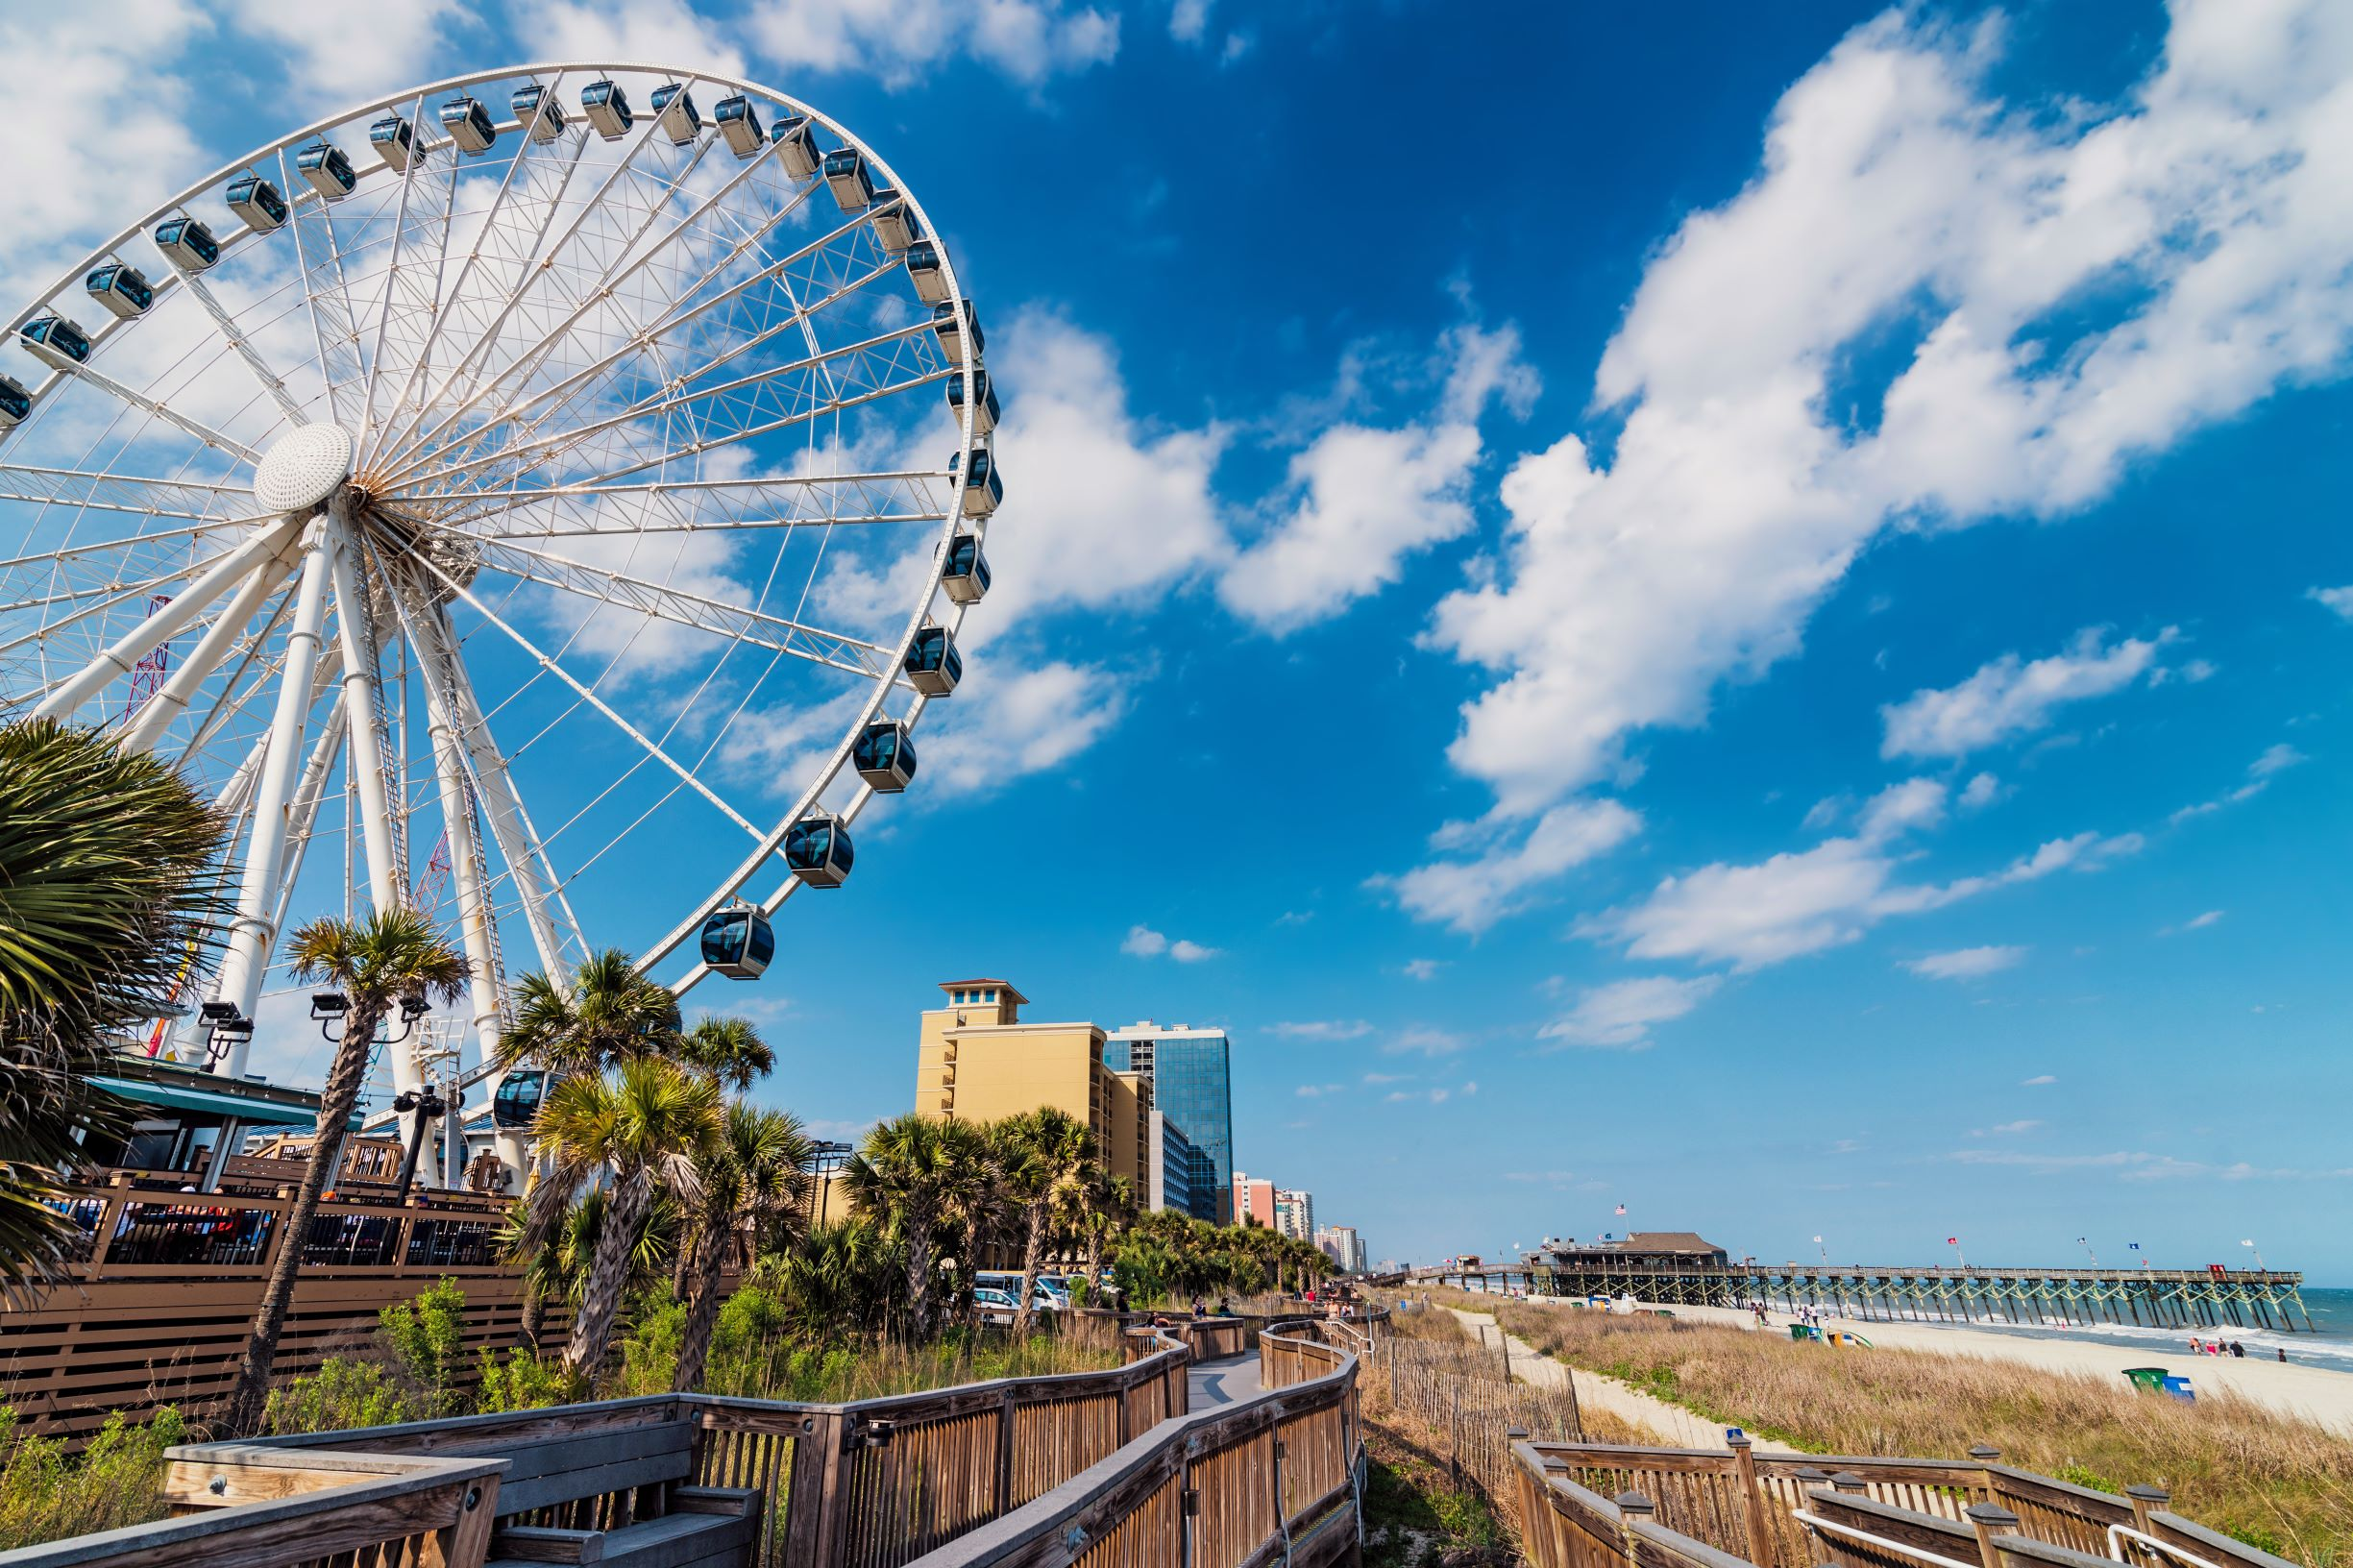 Phpto of Myrtle Beach that includes the Skywheel and the beach.